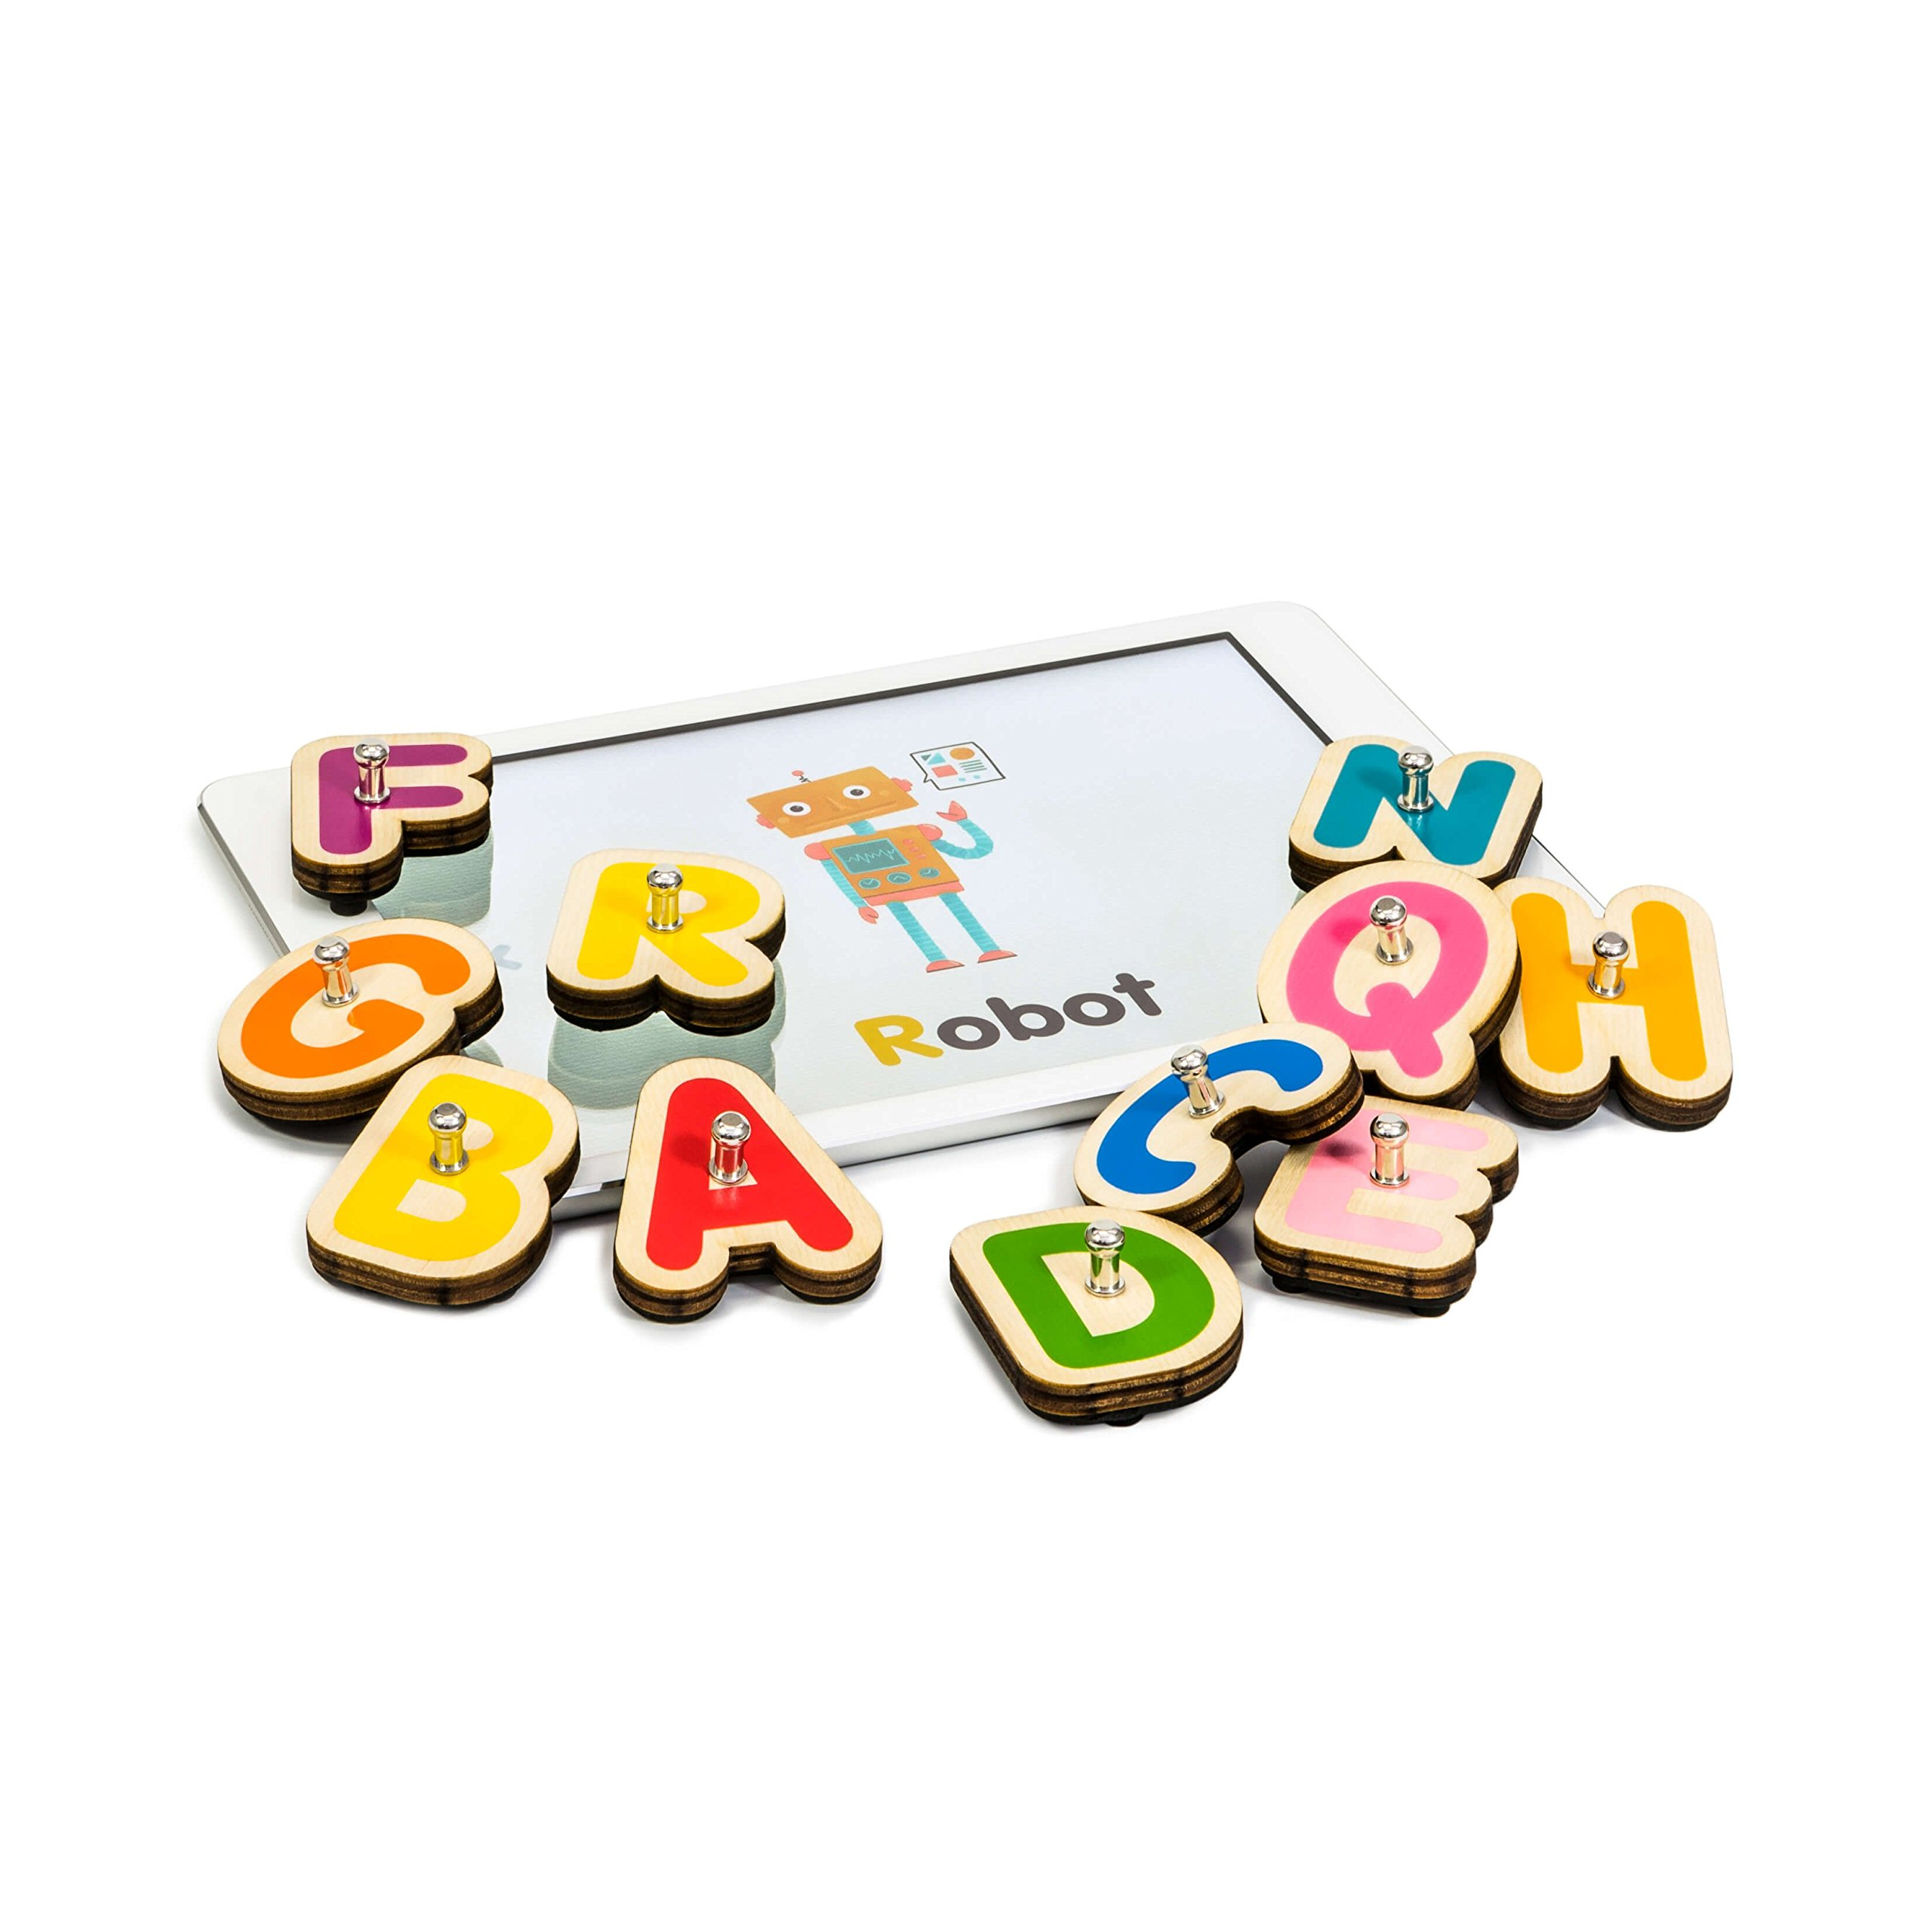 Marbotic Smart Letters - Interactive alphabet toys for tablet by Marbotic (Image #1)